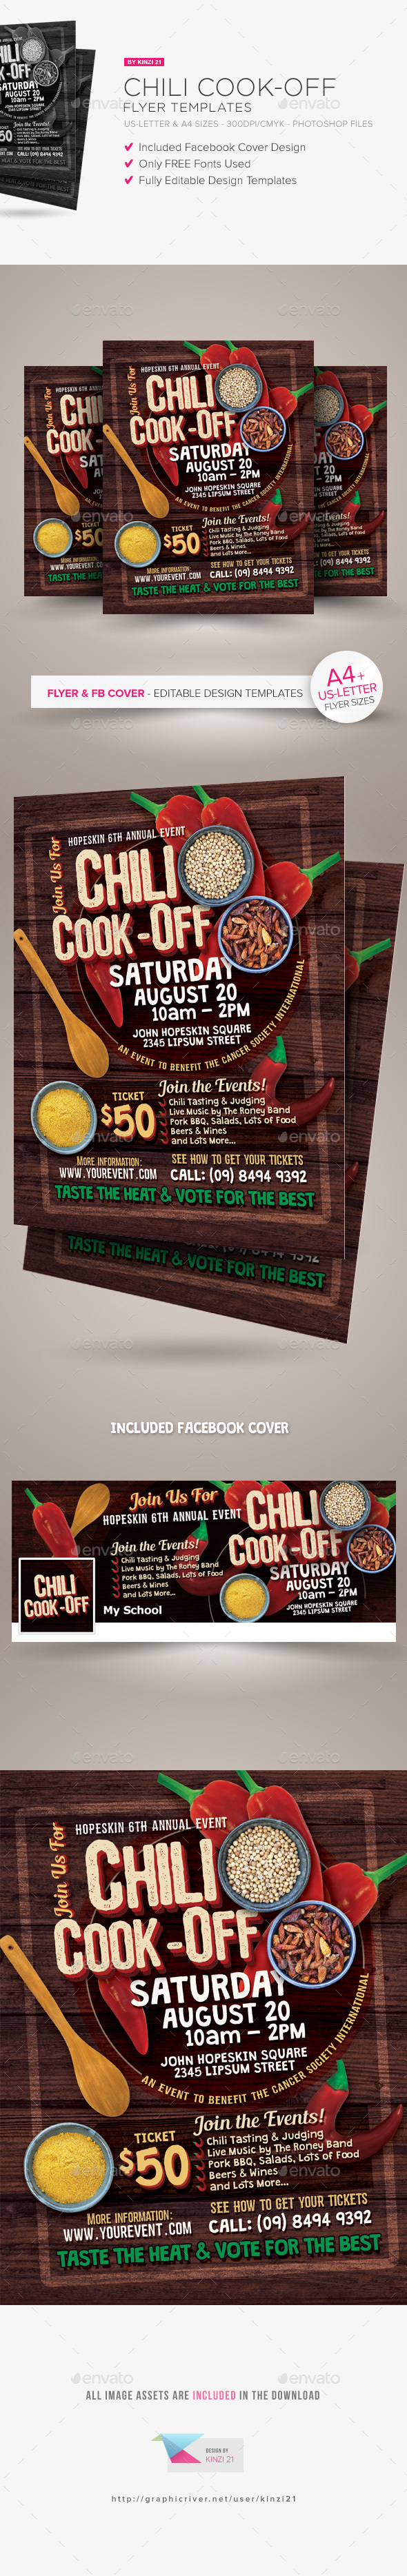 Chili Cook-off Flyer Template - Restaurant Flyers